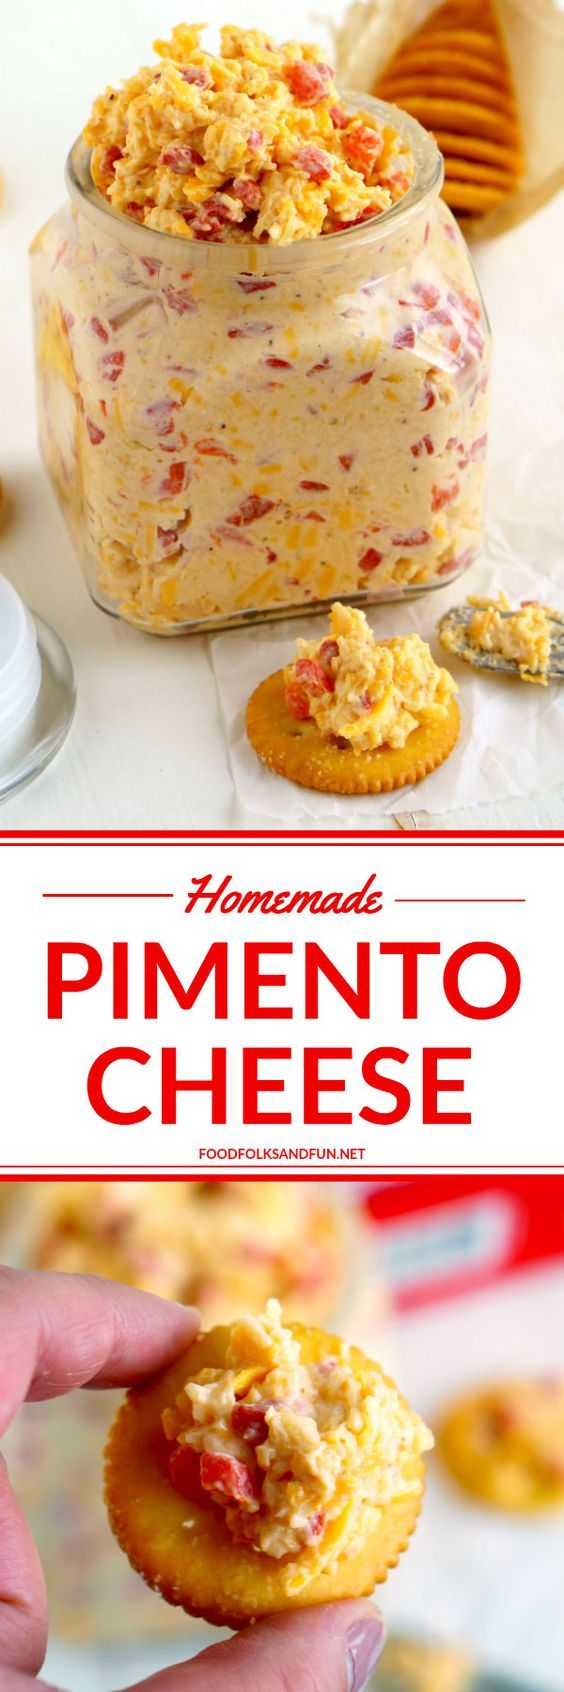 This recipe for Pimento Cheese, the southern classic, is simple, portable, and some serious comfort food. It's perfect for snacks or as an appetizer when entertaining! #FamilyRITZpiration  #ad